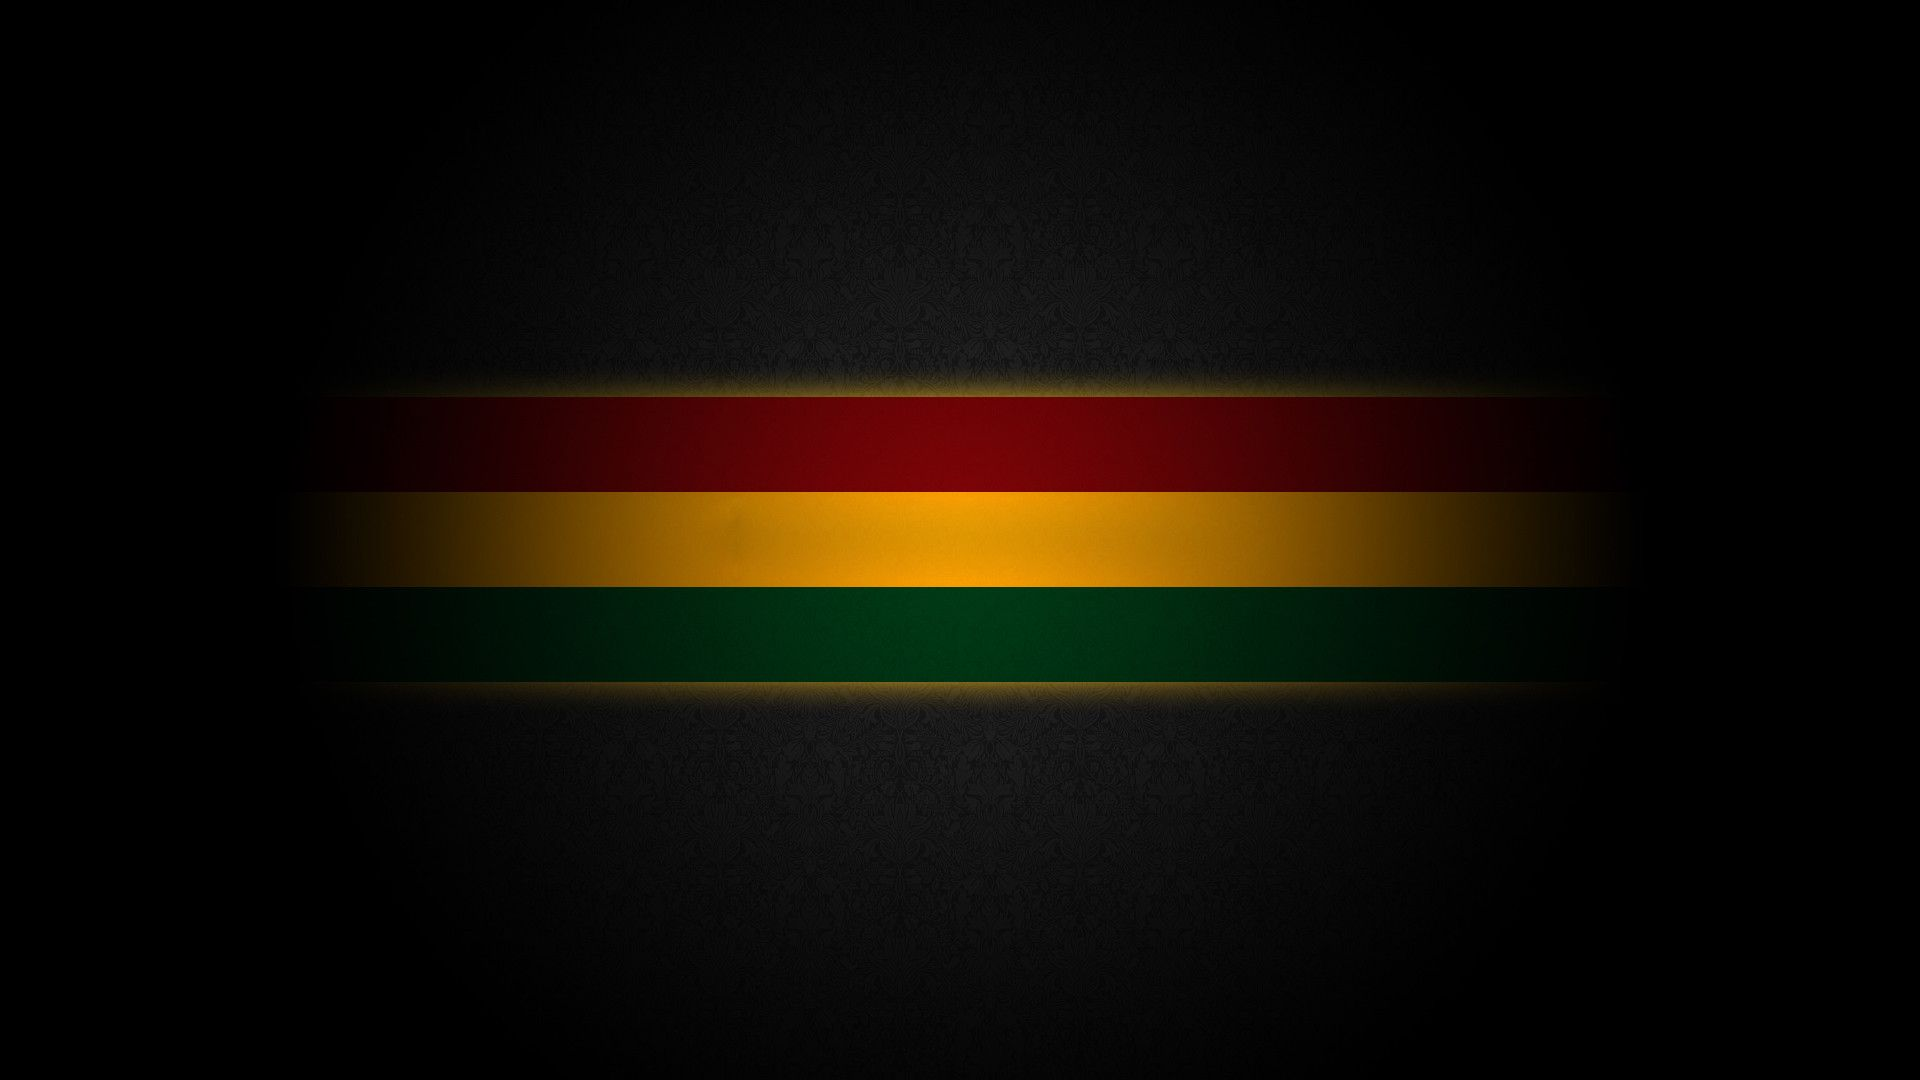 rasta flag wallpapers 31 wallpapers � adorable wallpapers